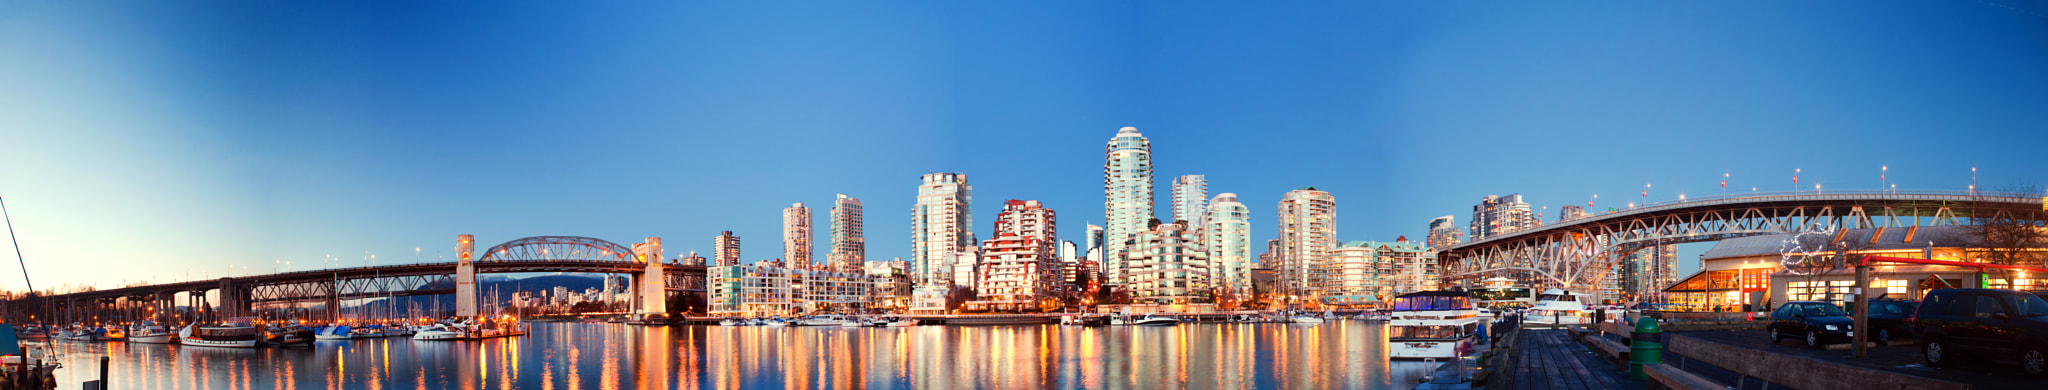 Photograph False Creek by Kevin Uy on 500px